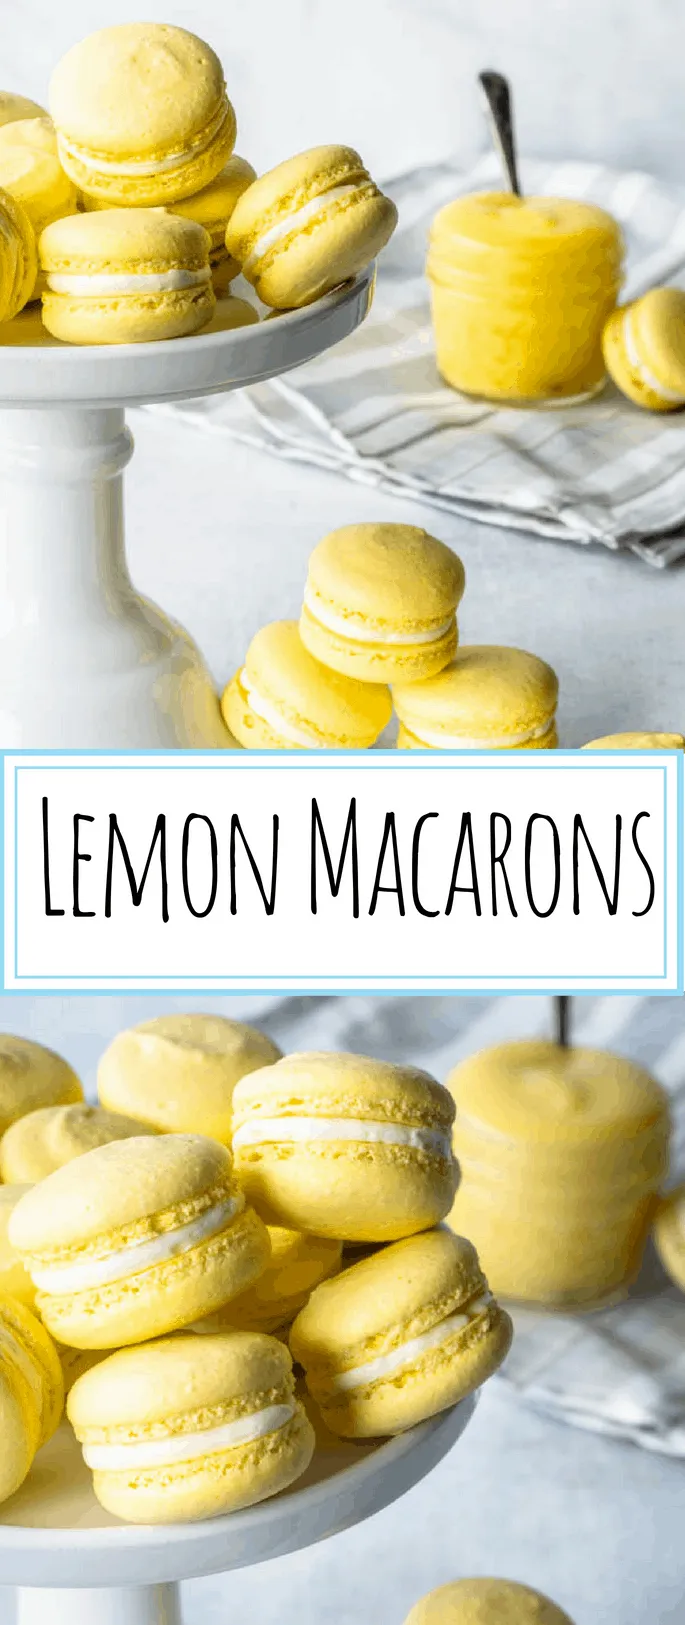 These Lemon Macarons are the perfect balance between sweet and tangy, in two perfect, delicate bite